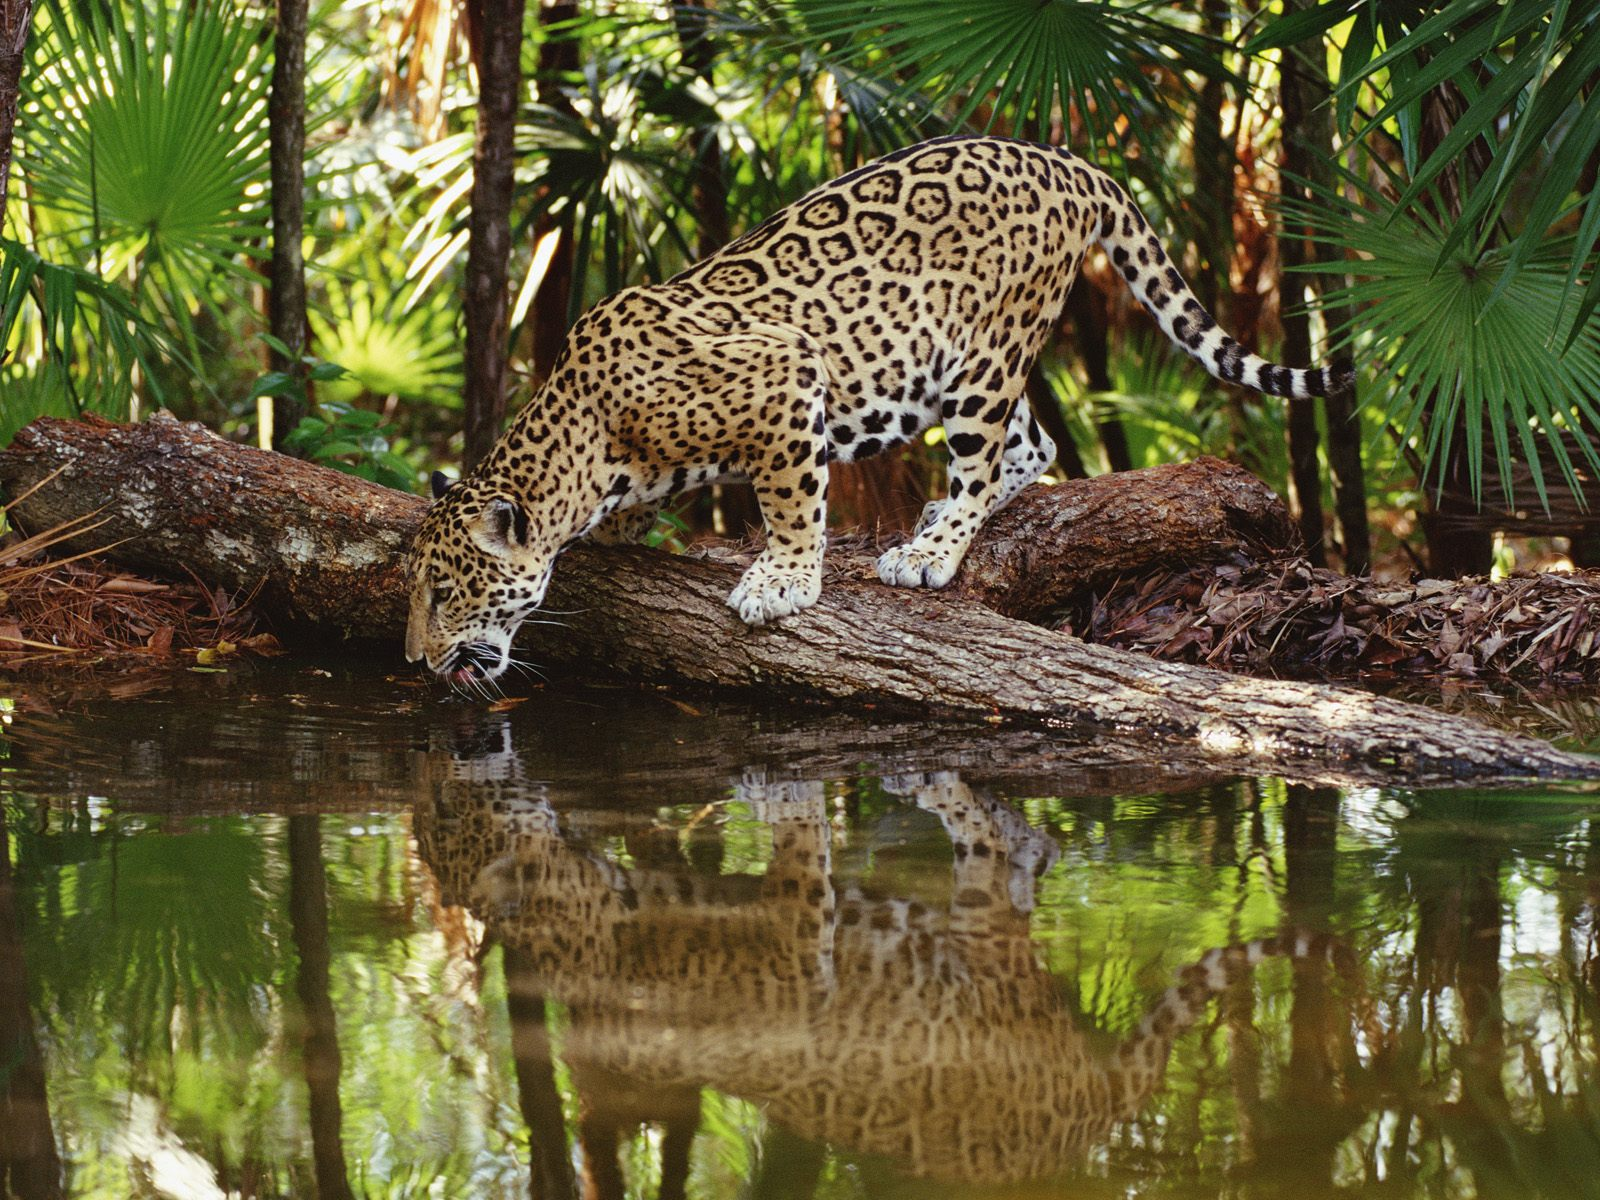 wildlife found in equatorial region There are so many animals that are found in the equatorial region some of the common ones include jaguar, green iguana, boa, chimpanzee, tiger, okapi and many more there are different animals that are found in the equatorial region.